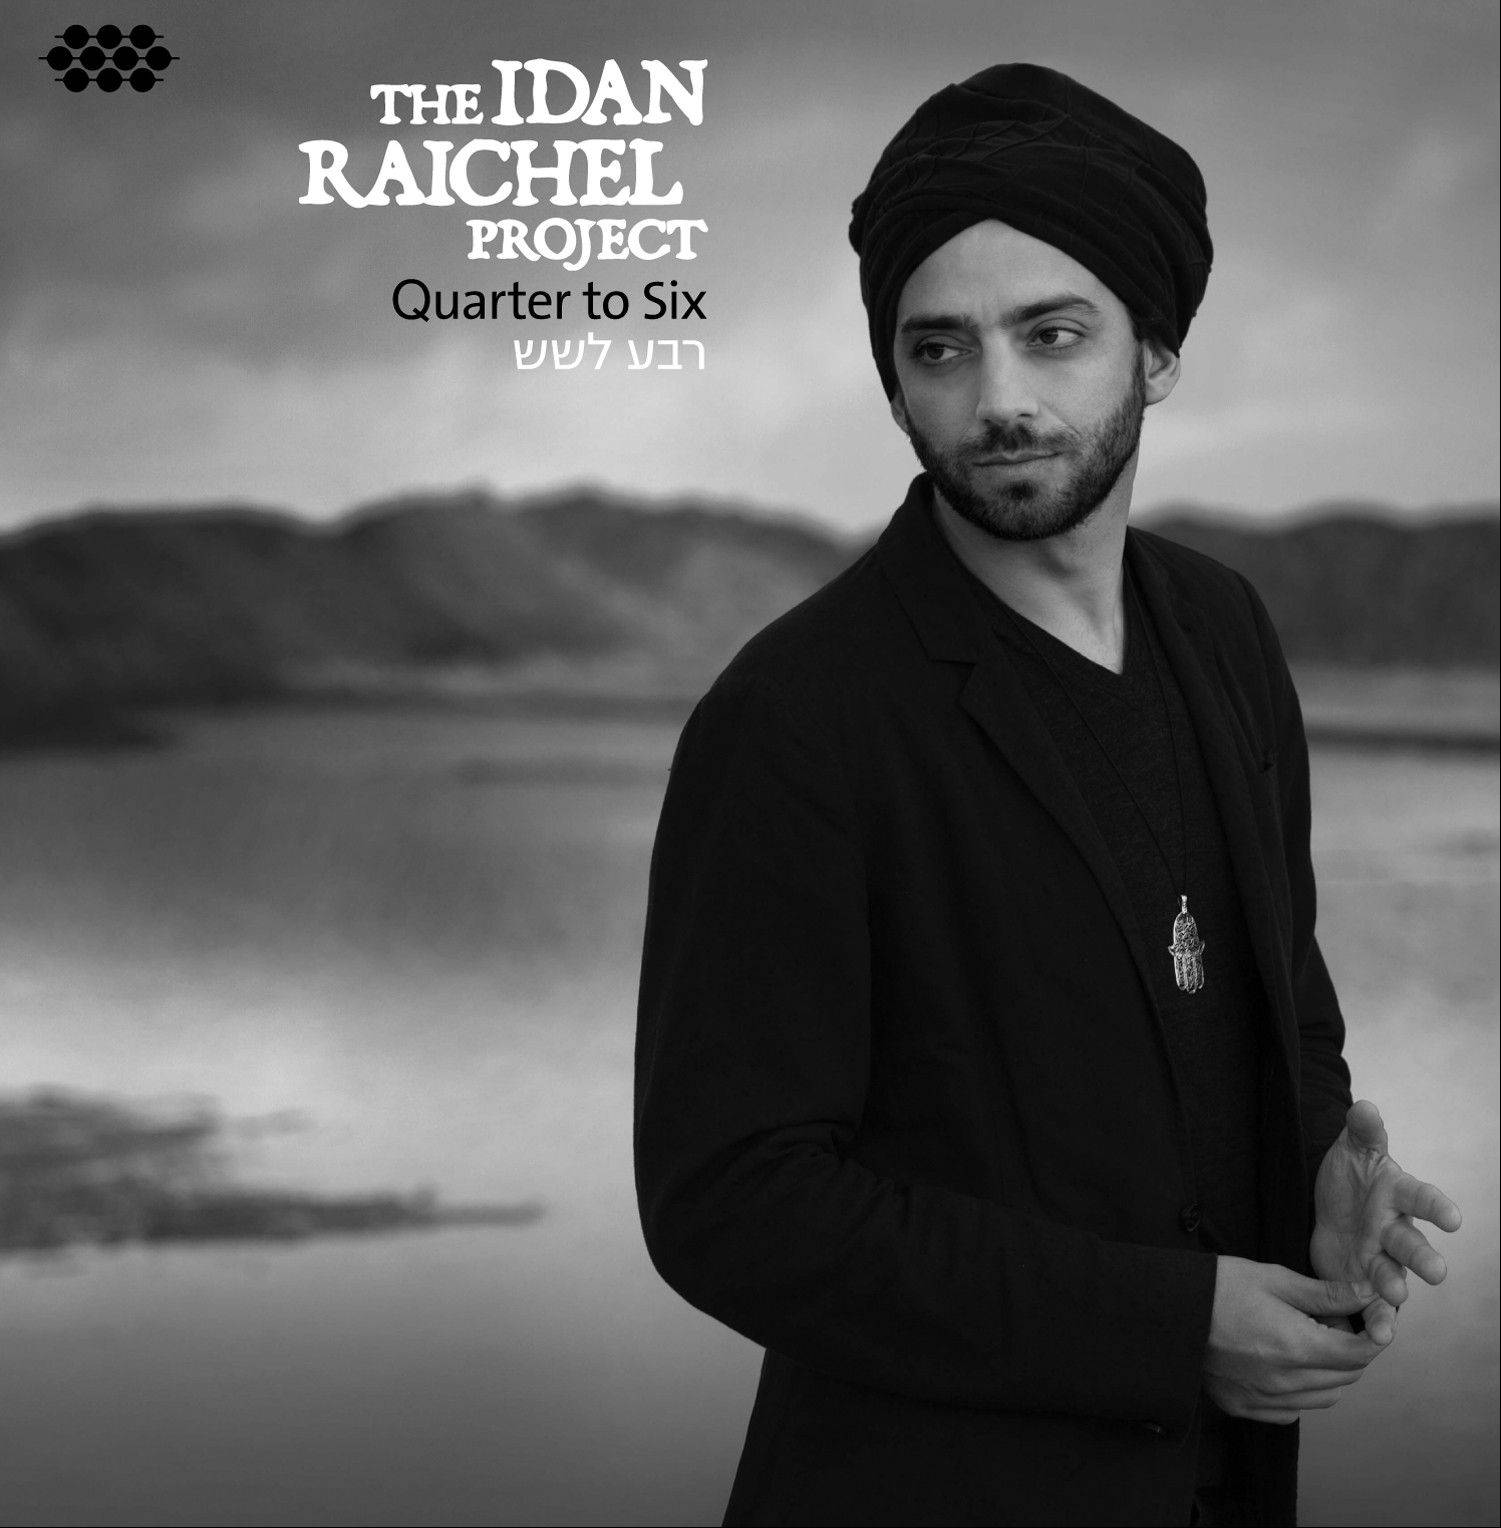 �Quarter to Six,� the latest release by The Idan Raichel Project